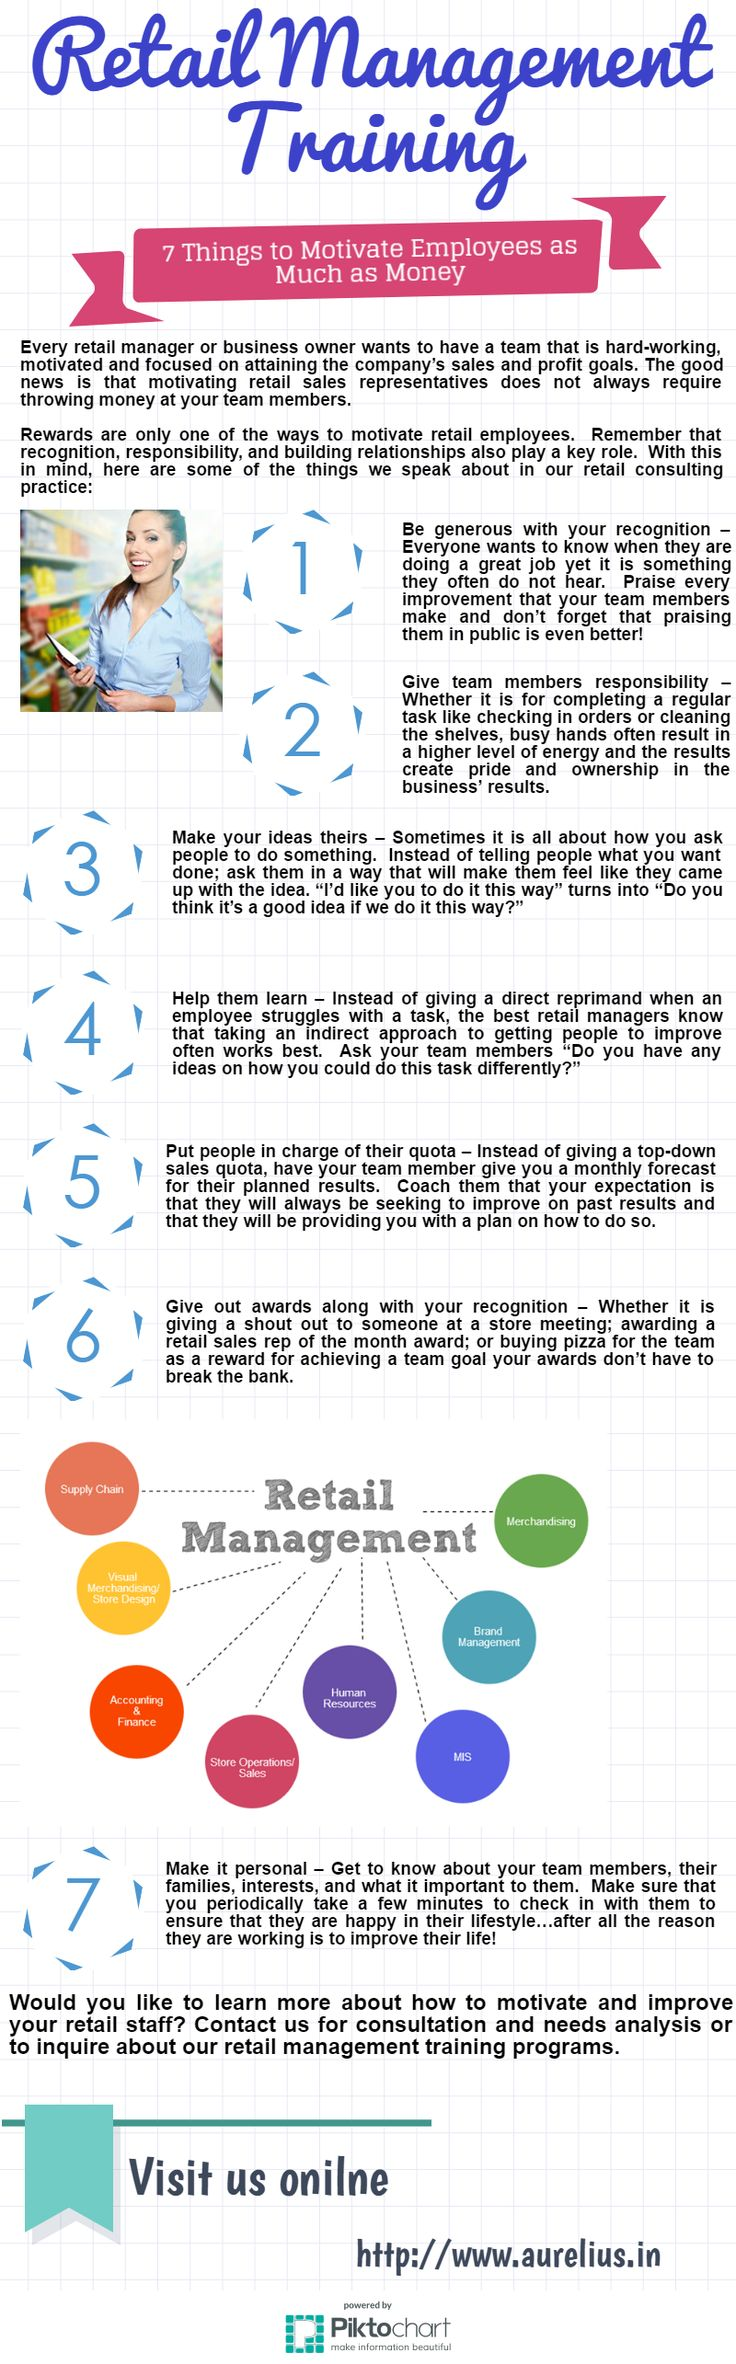 Fashion Sales Representative Sample Resume Impressive The Everything Guide To Starting And Running A Retail Store All You .